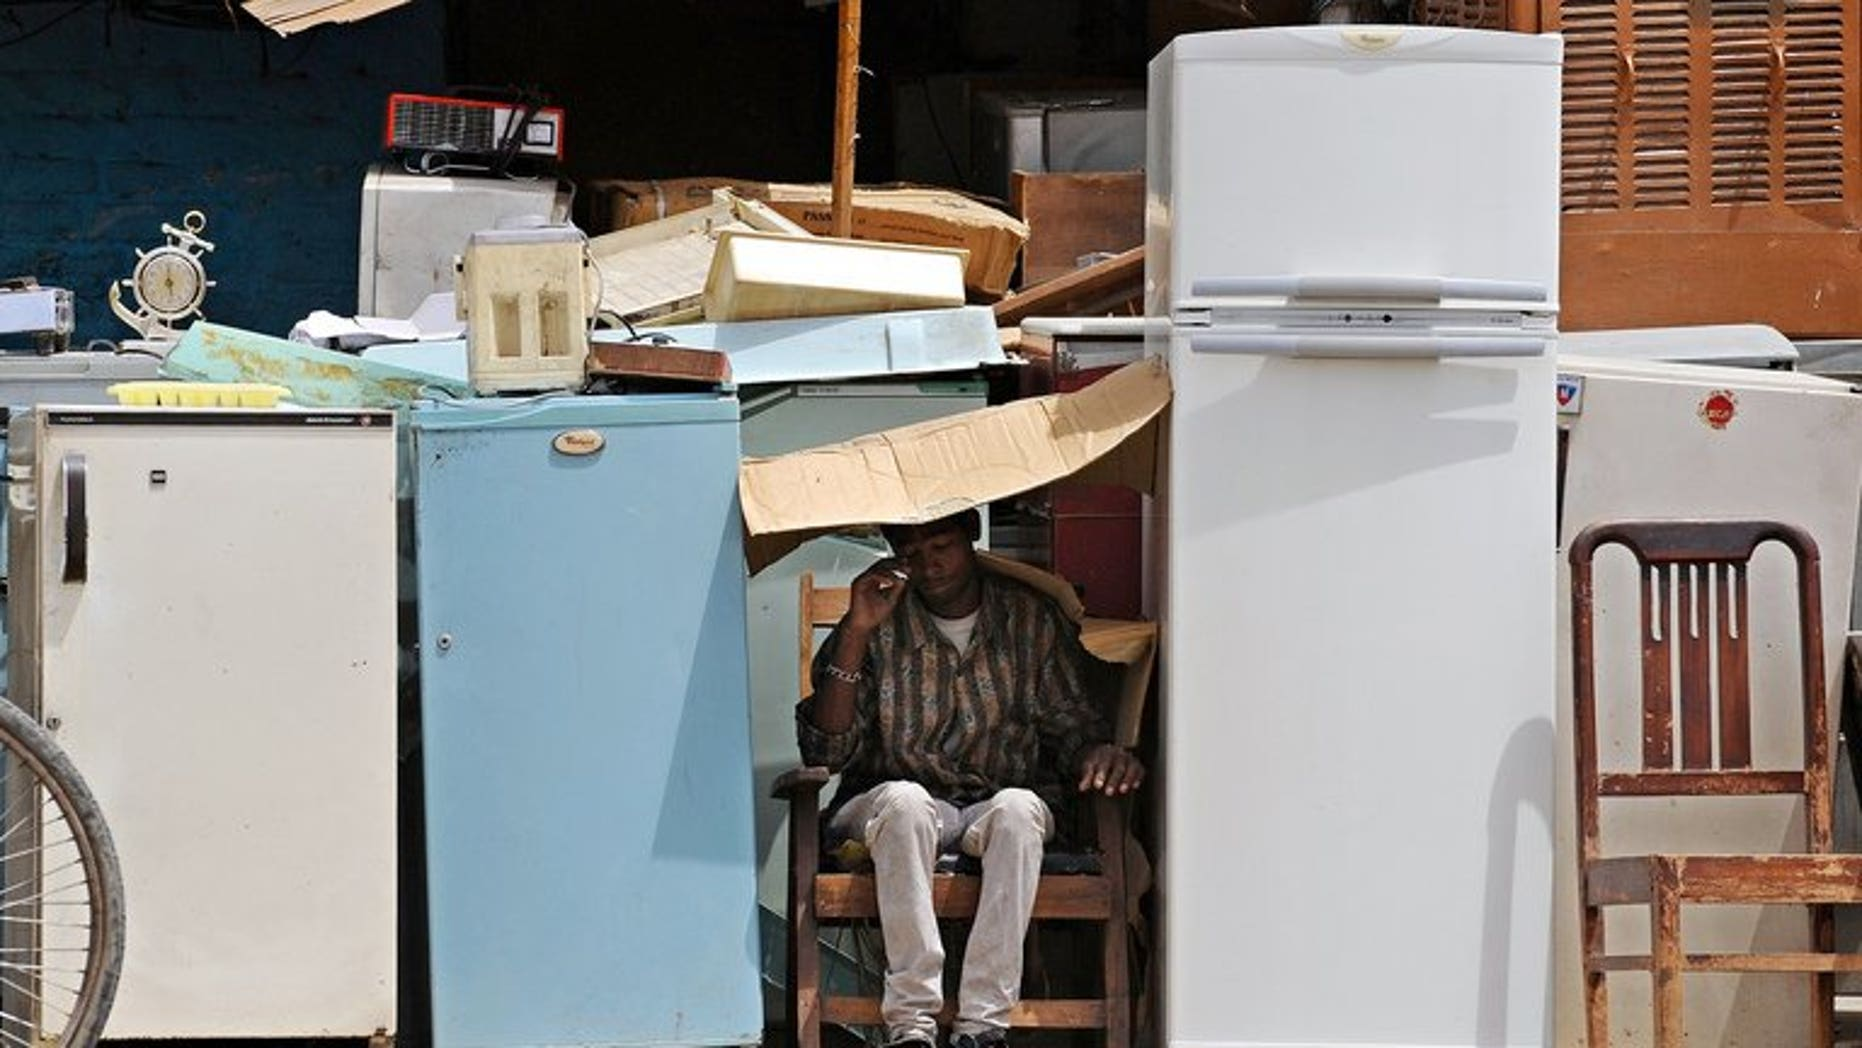 Used refrigerators are displayed for sale. Three South African children were found dead by a grandparent after becoming stuck in an abandoned refrigerator as they played near their home, police have said.